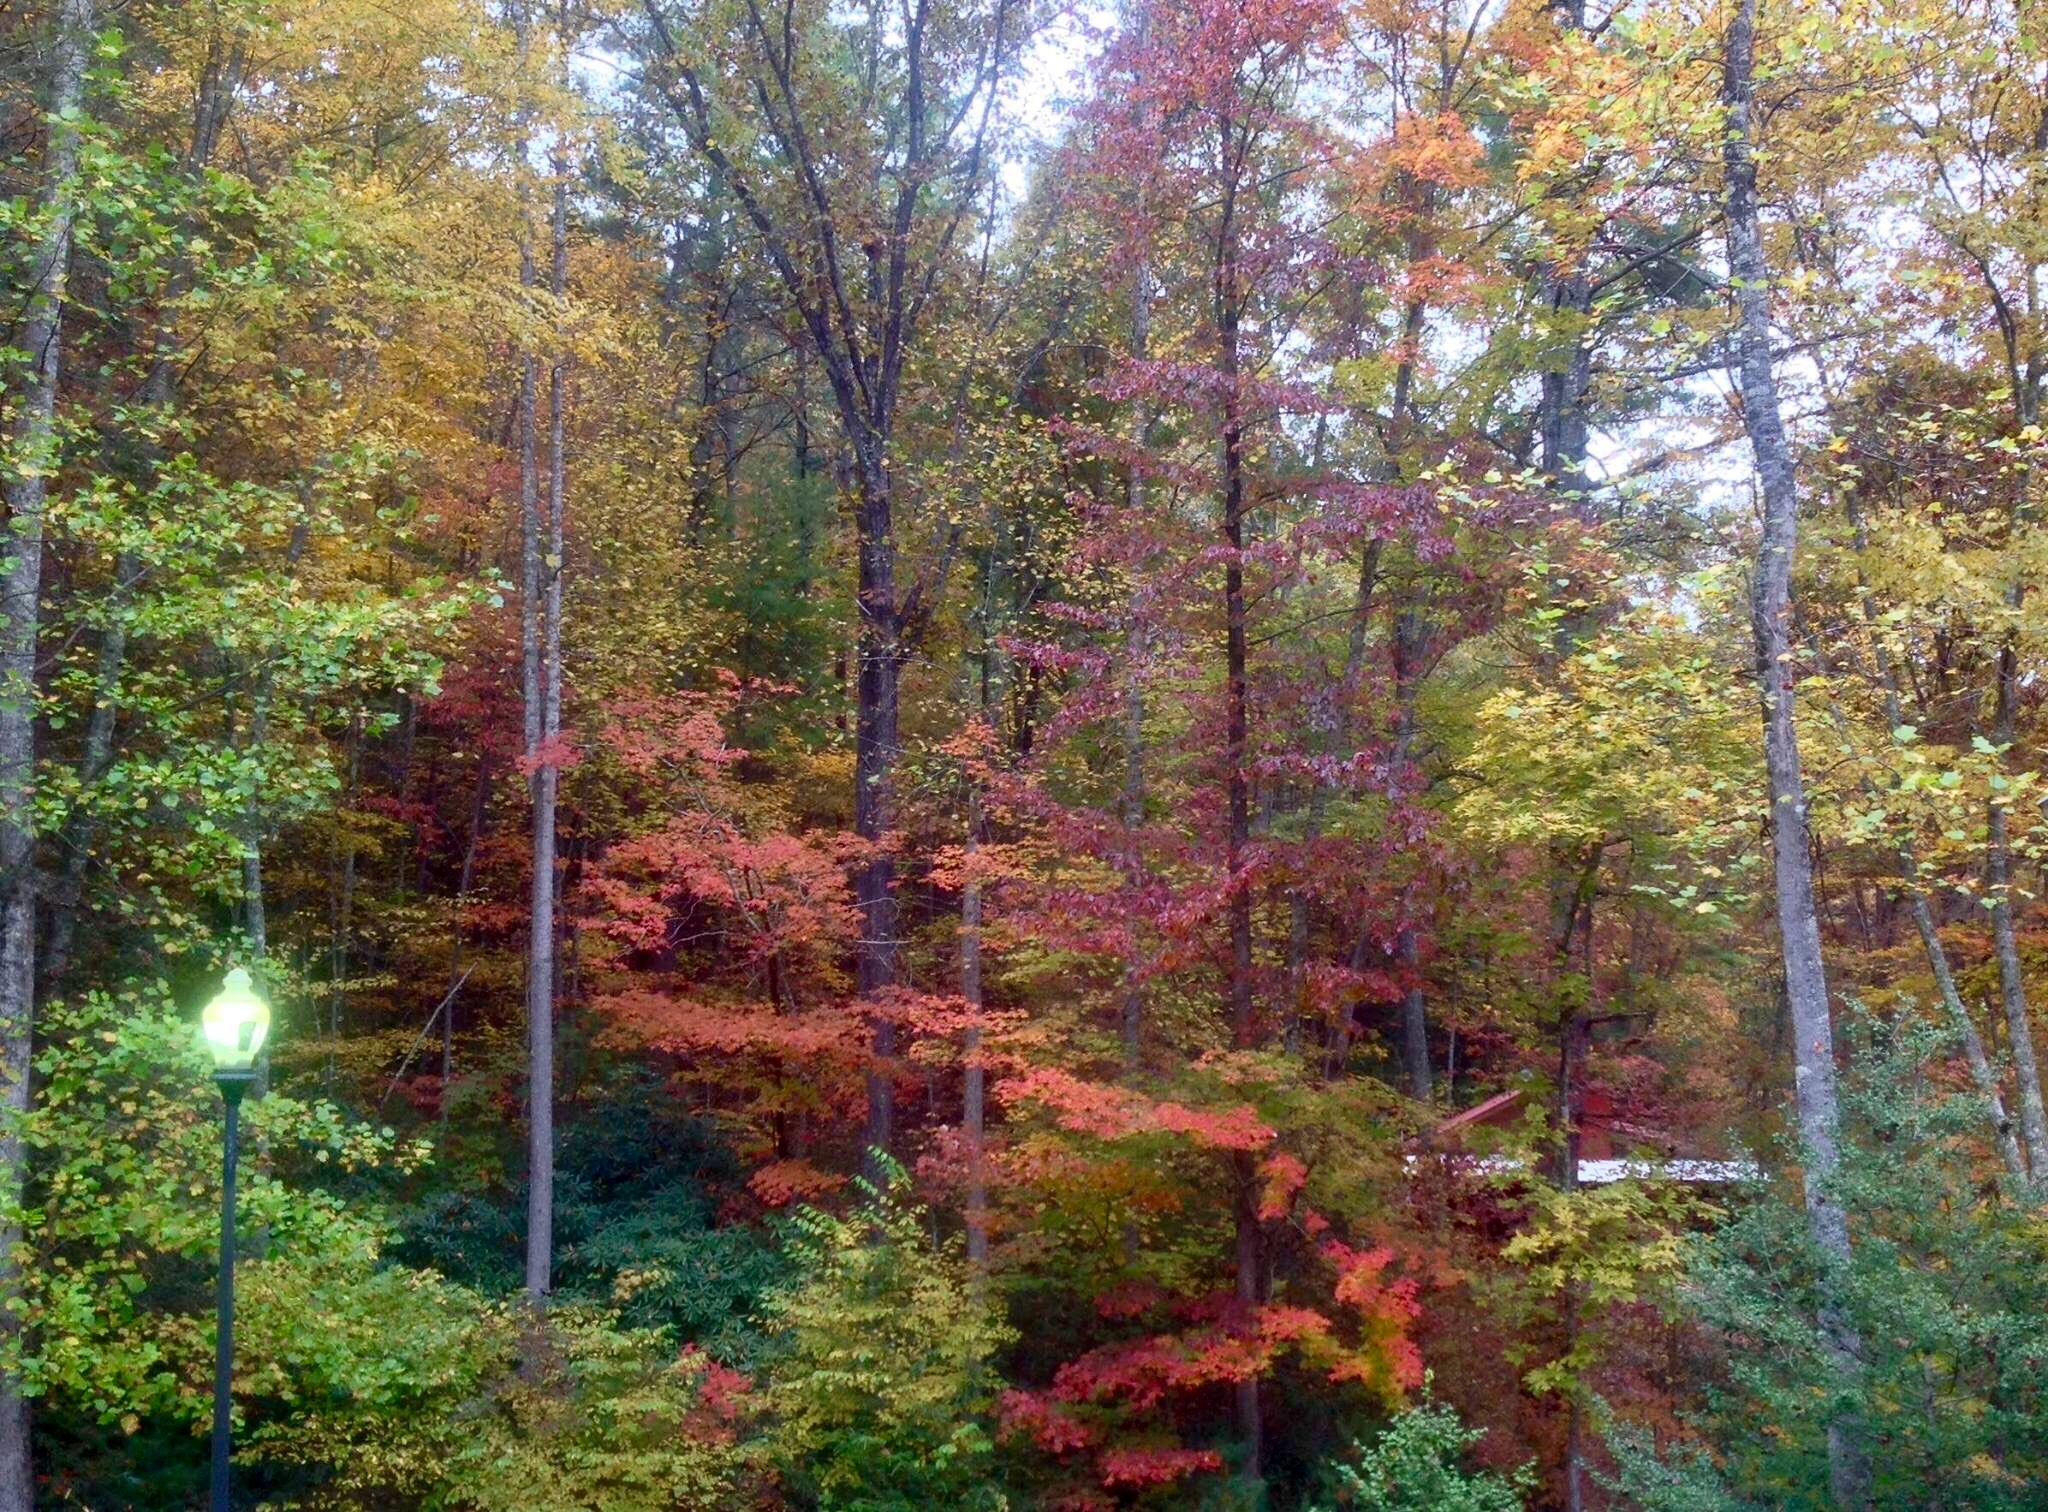 My Front Yard in the Fall